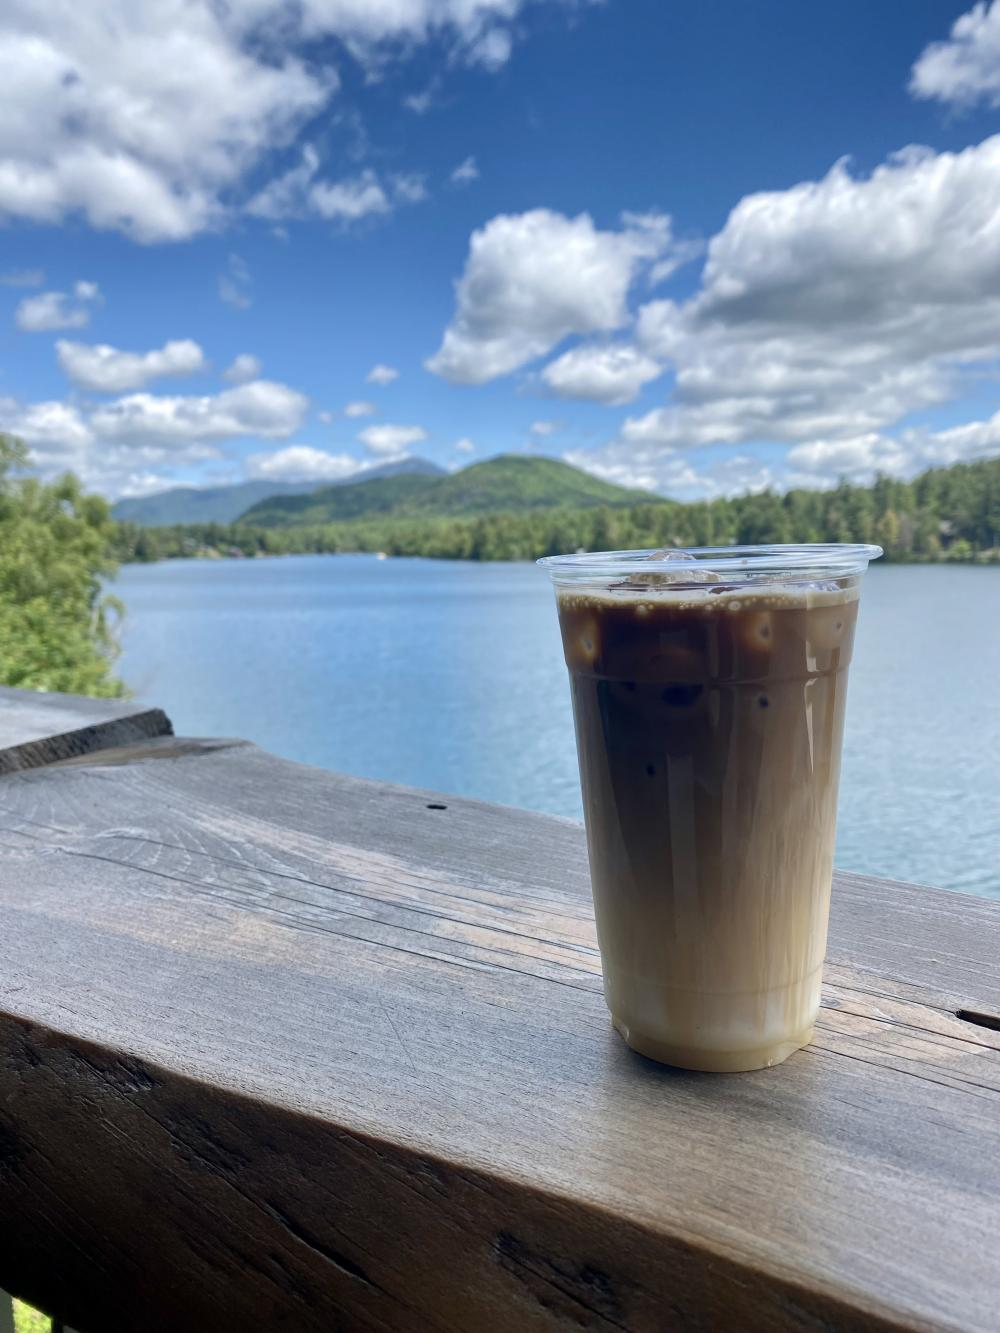 A cold coffee sits on a railing overlooking a sunny lake and mountains.